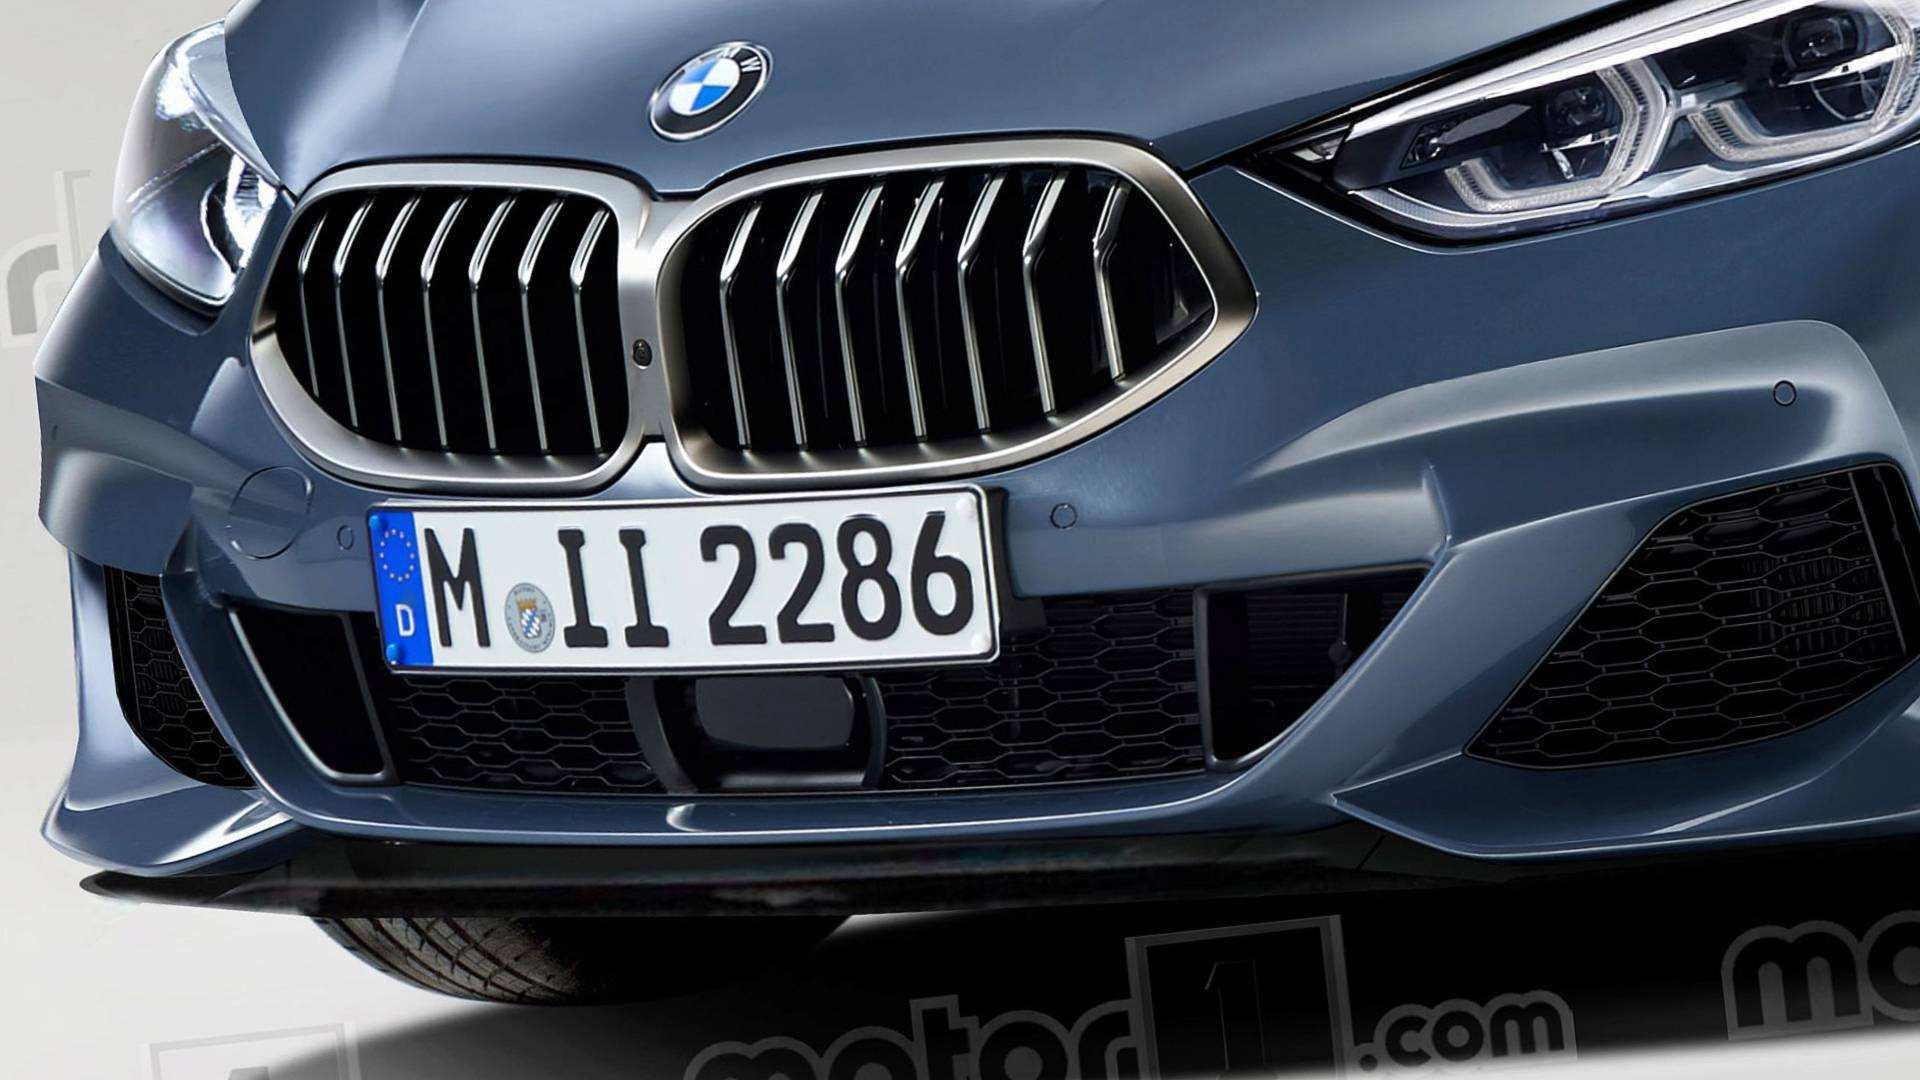 97 Concept of 2019 Bmw 1 Series Style with 2019 Bmw 1 Series